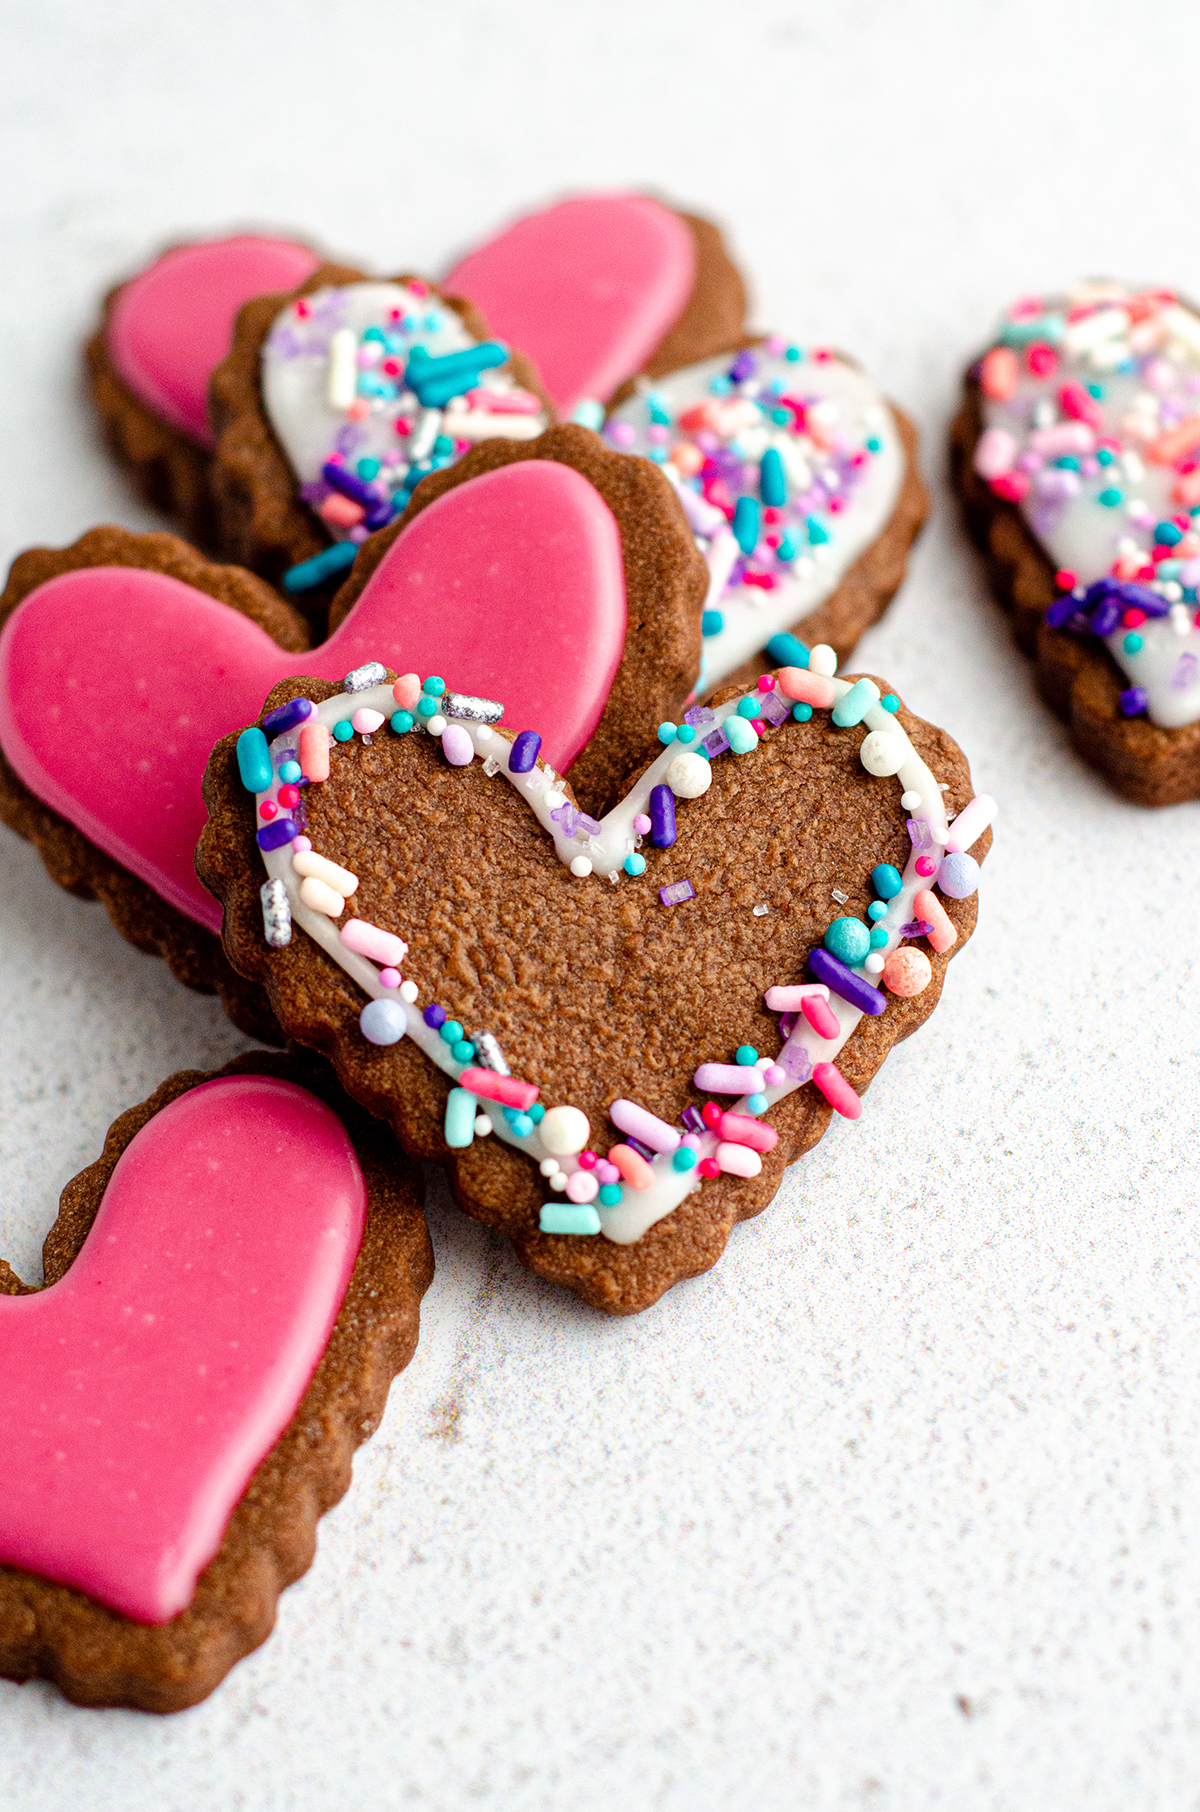 heart shaped chocolate cut-out sugar cookies decorated with icing and sprinkles